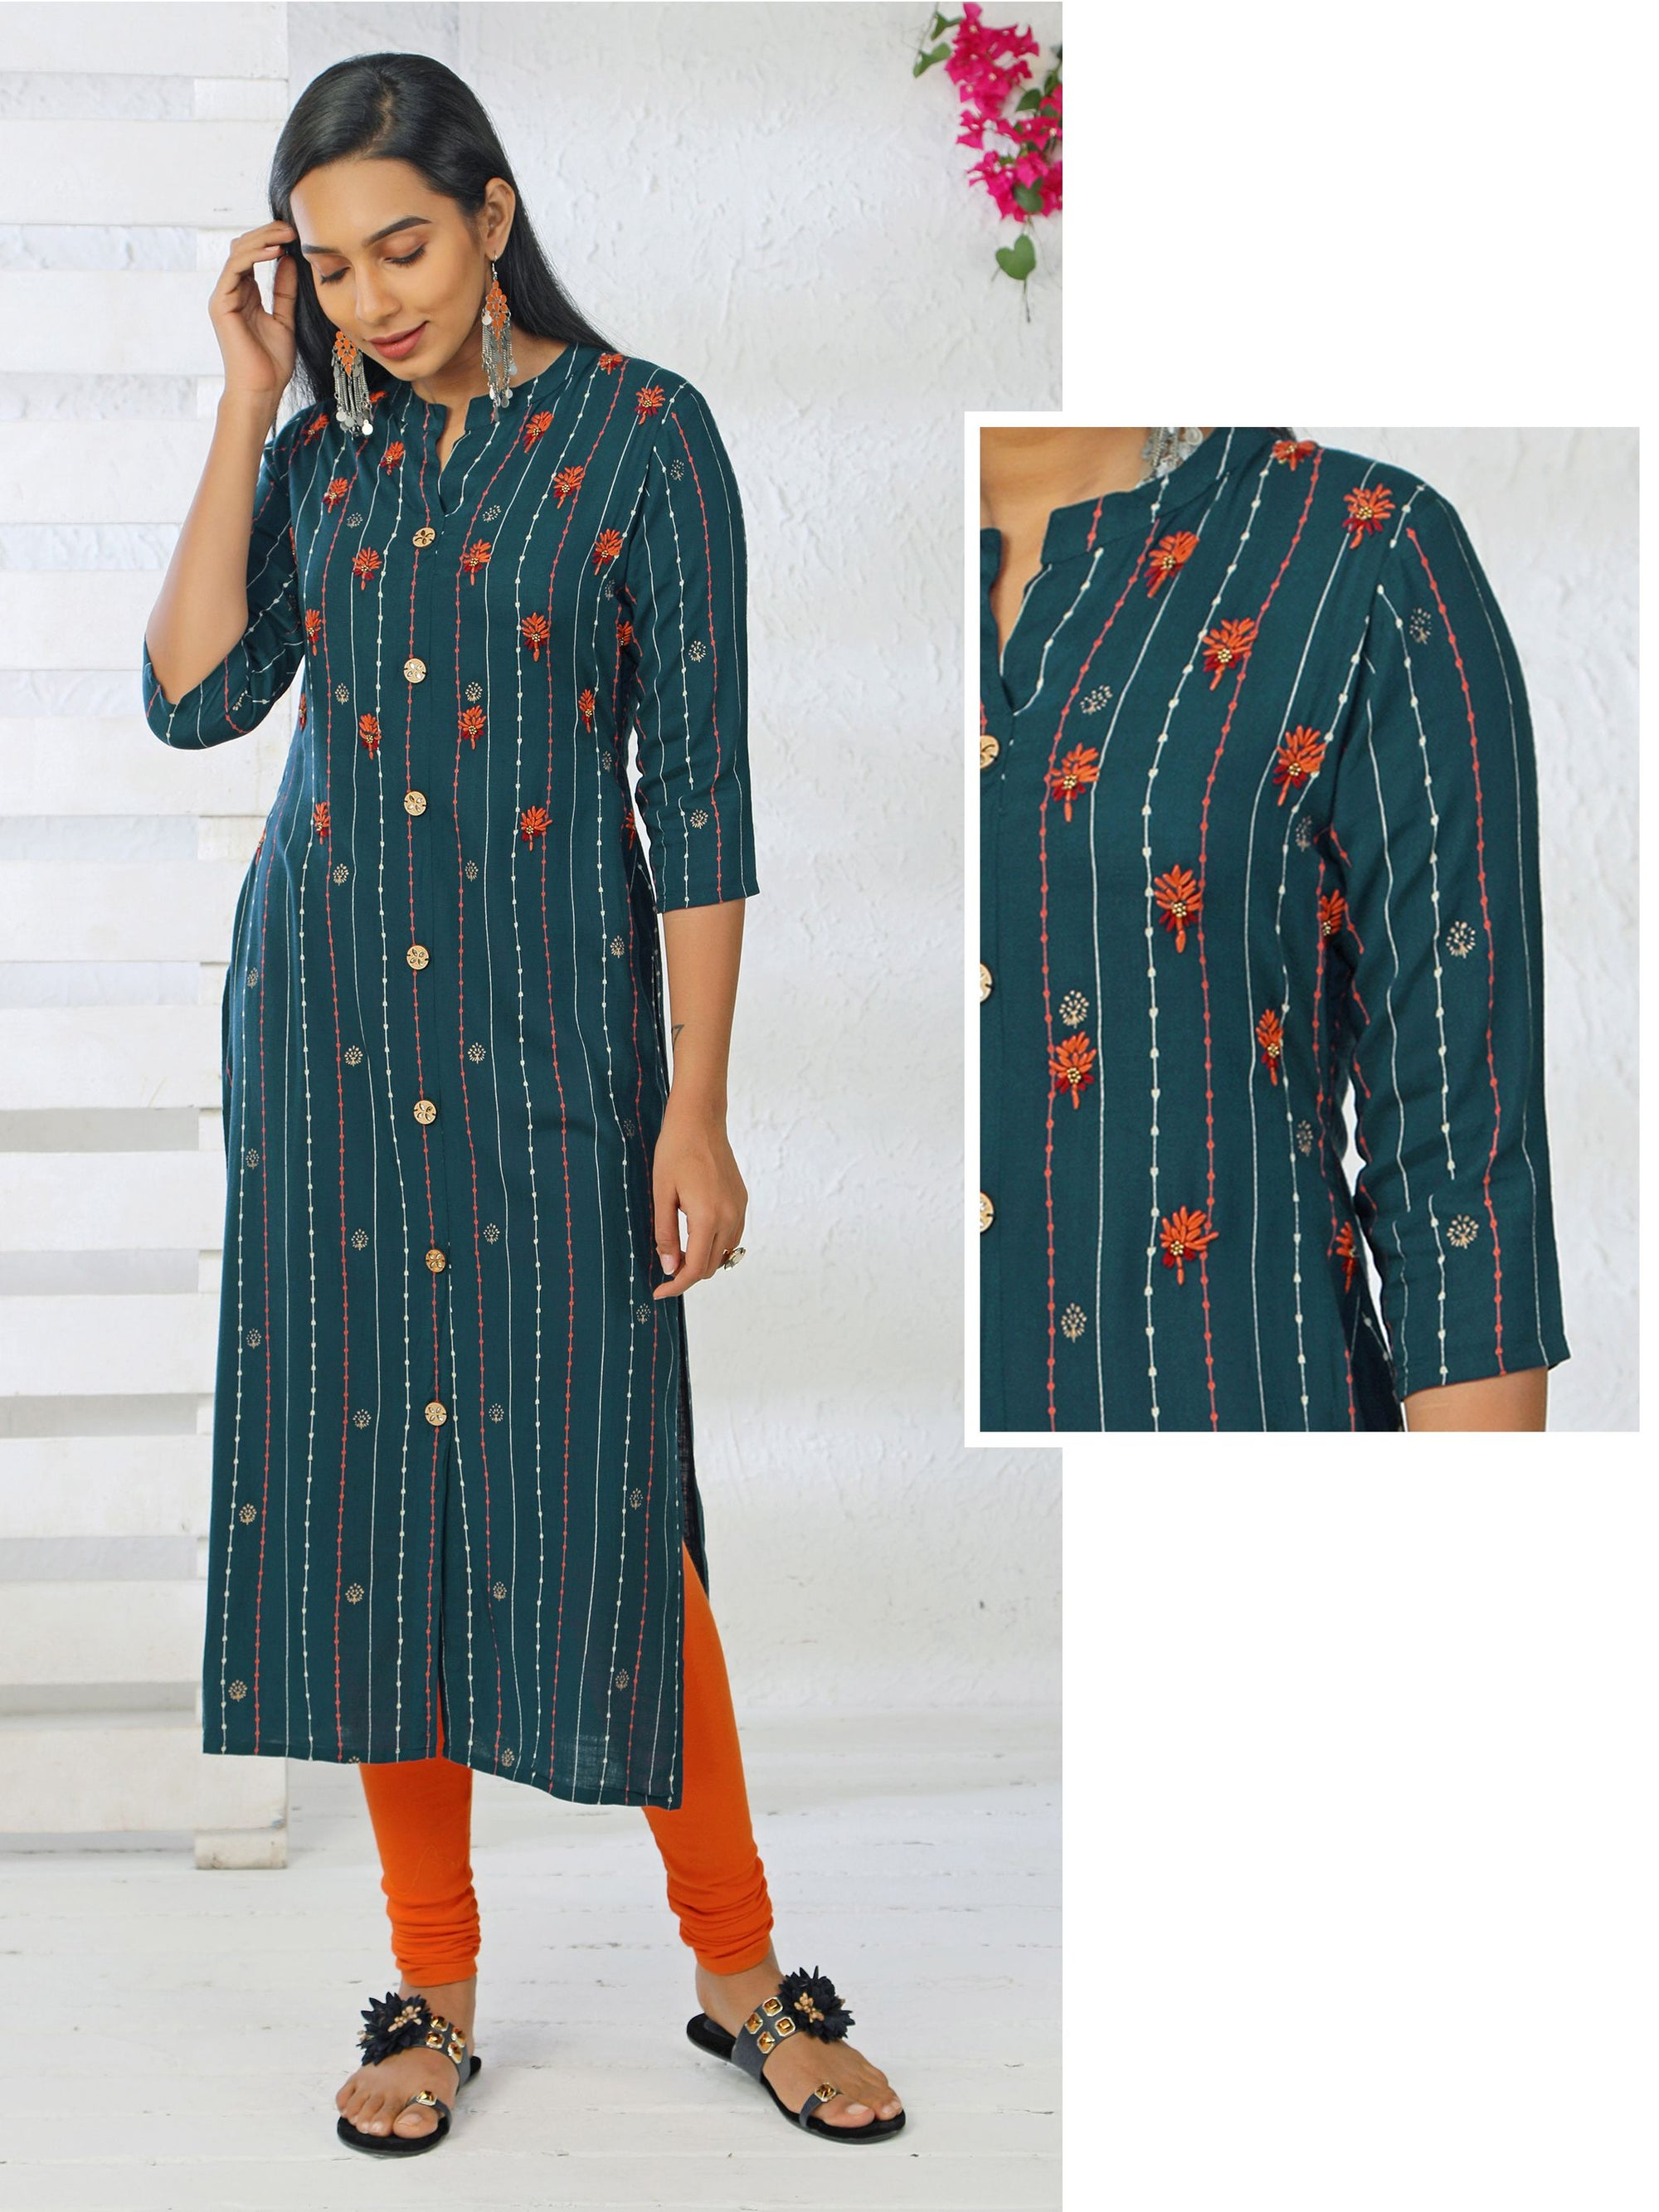 Kundan Stoned Buttons & Hand Embroidered Teal Kurti